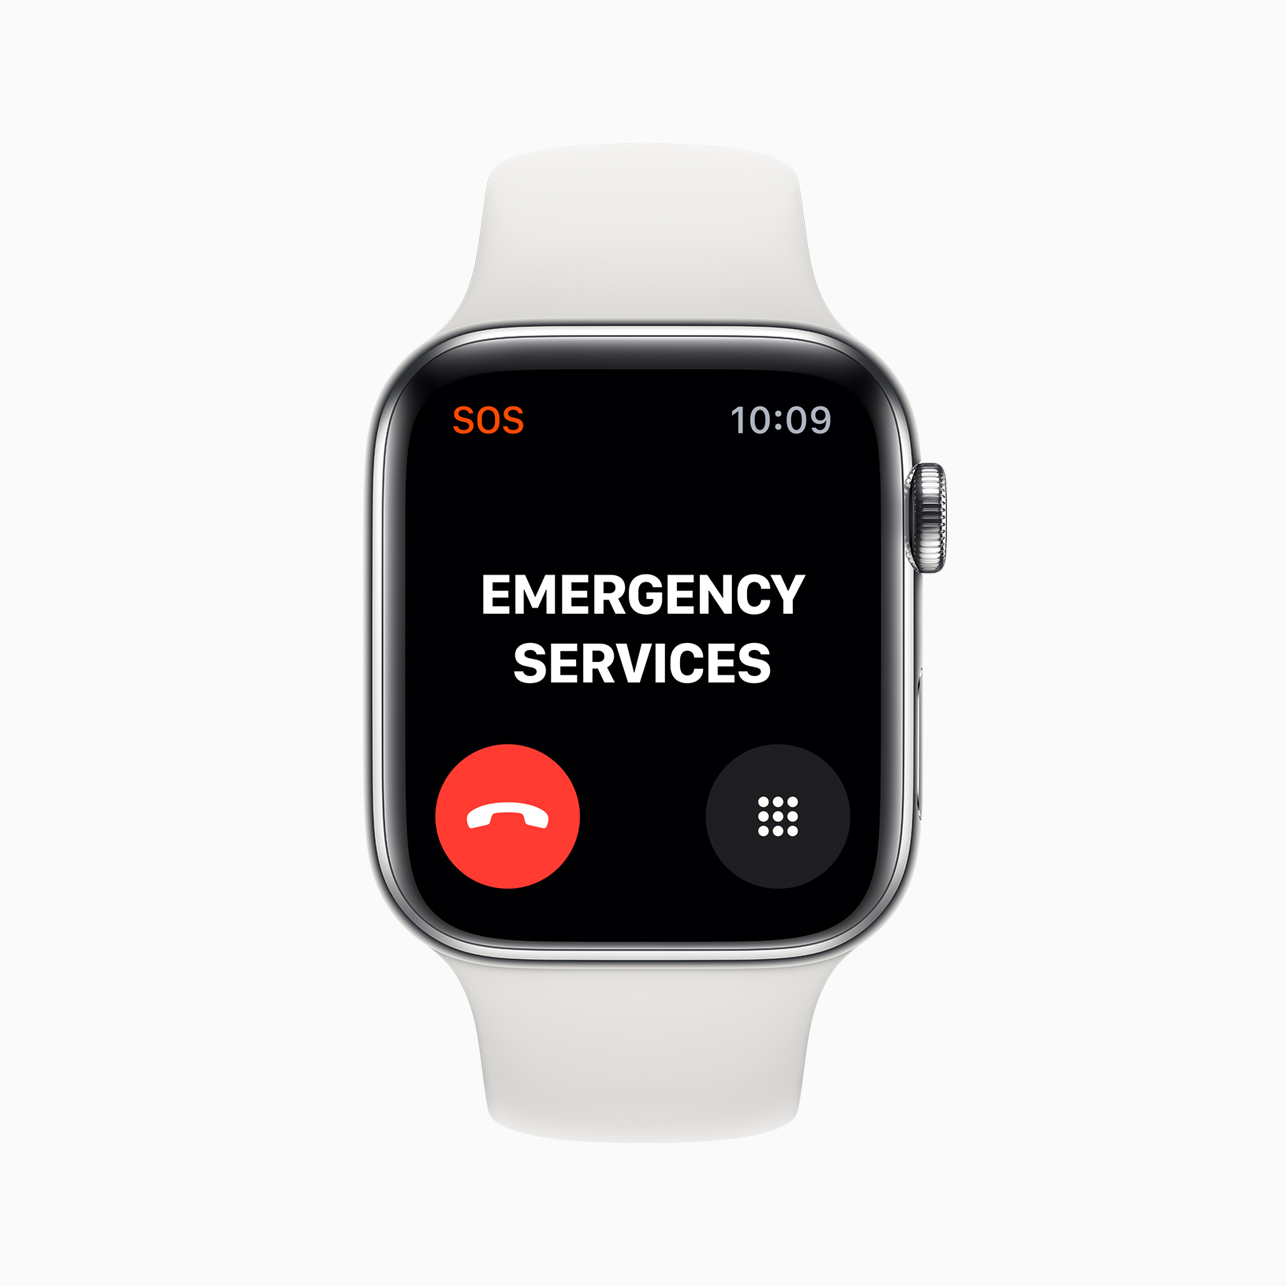 apple_watch_series_5-sos-call-emergency-services-screen-091019.jpg